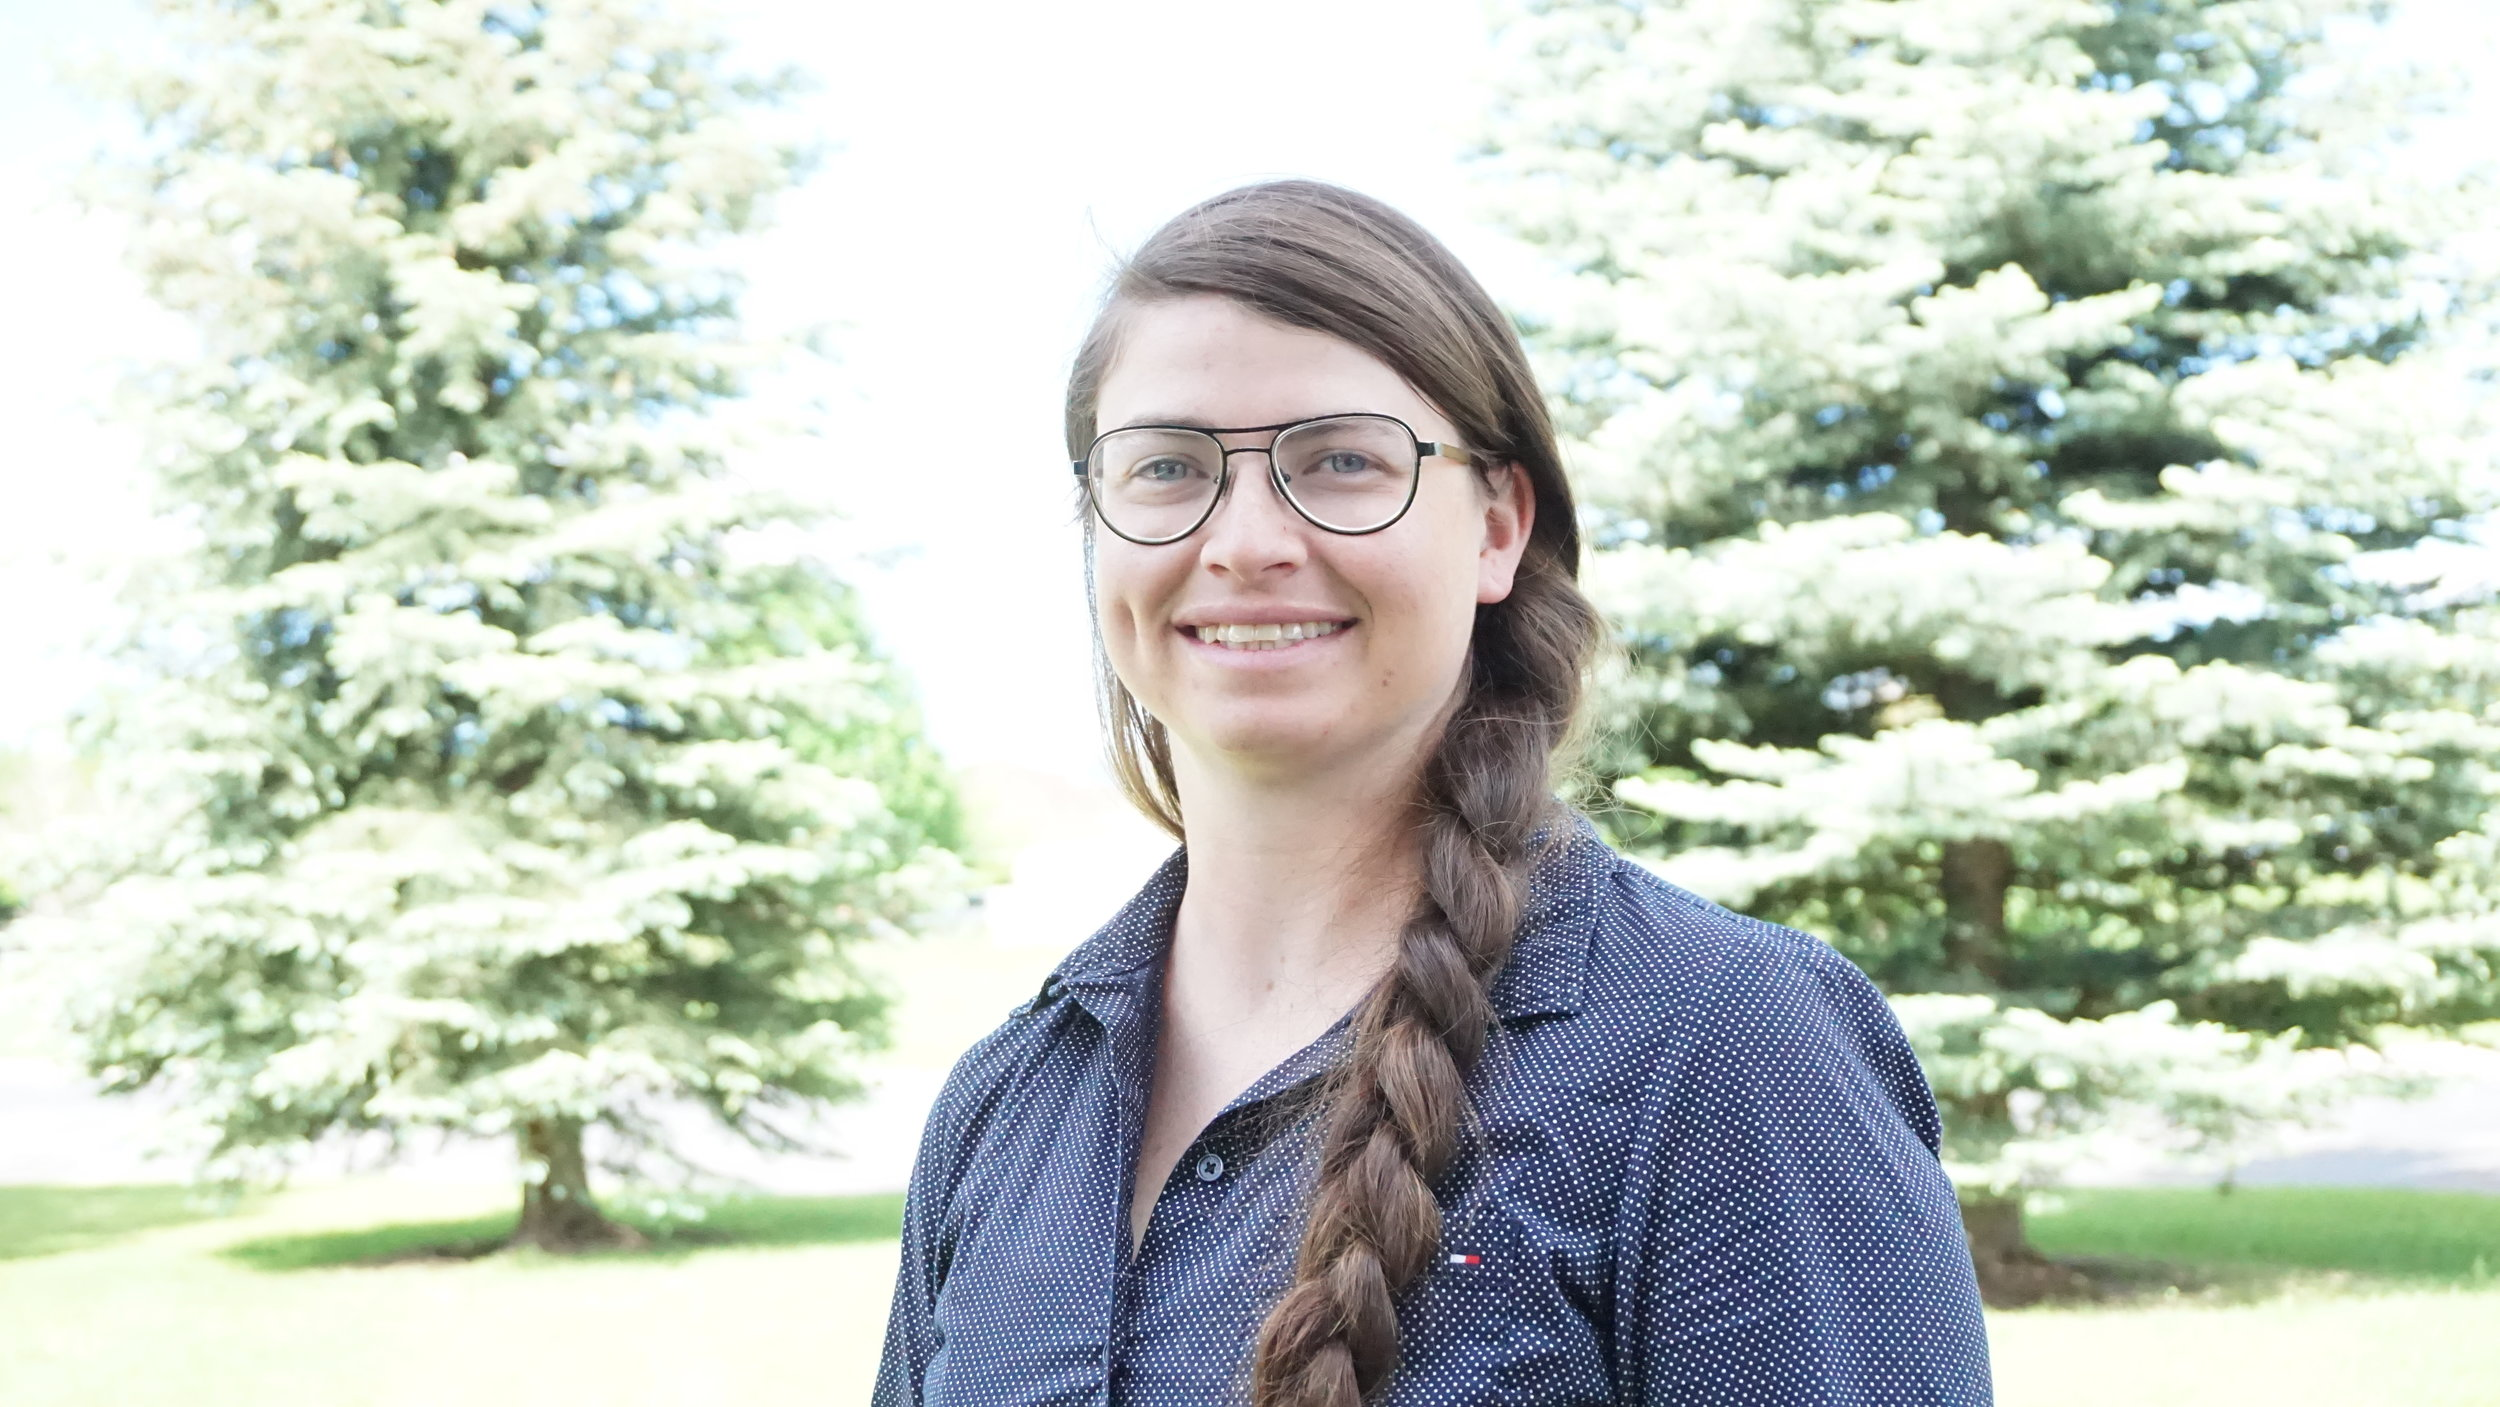 MOLLIE PHILLIPS   ENGINEER  Mollie is streamlining the manufacturing process for the UPAS and conducting testing to help development of new products. She enjoys interacting with customers helping them succeed and continues to gain knowledge of aerosol sciences. She has been involved in creating prototypes, panning and maintaining an aerosol sensor network, troubleshooting hardware and software systems, and strives to uphold high quality manufacturing standards.   B.S. in Mechanical Engineering and Biomedical Engineering from Colorado State University.